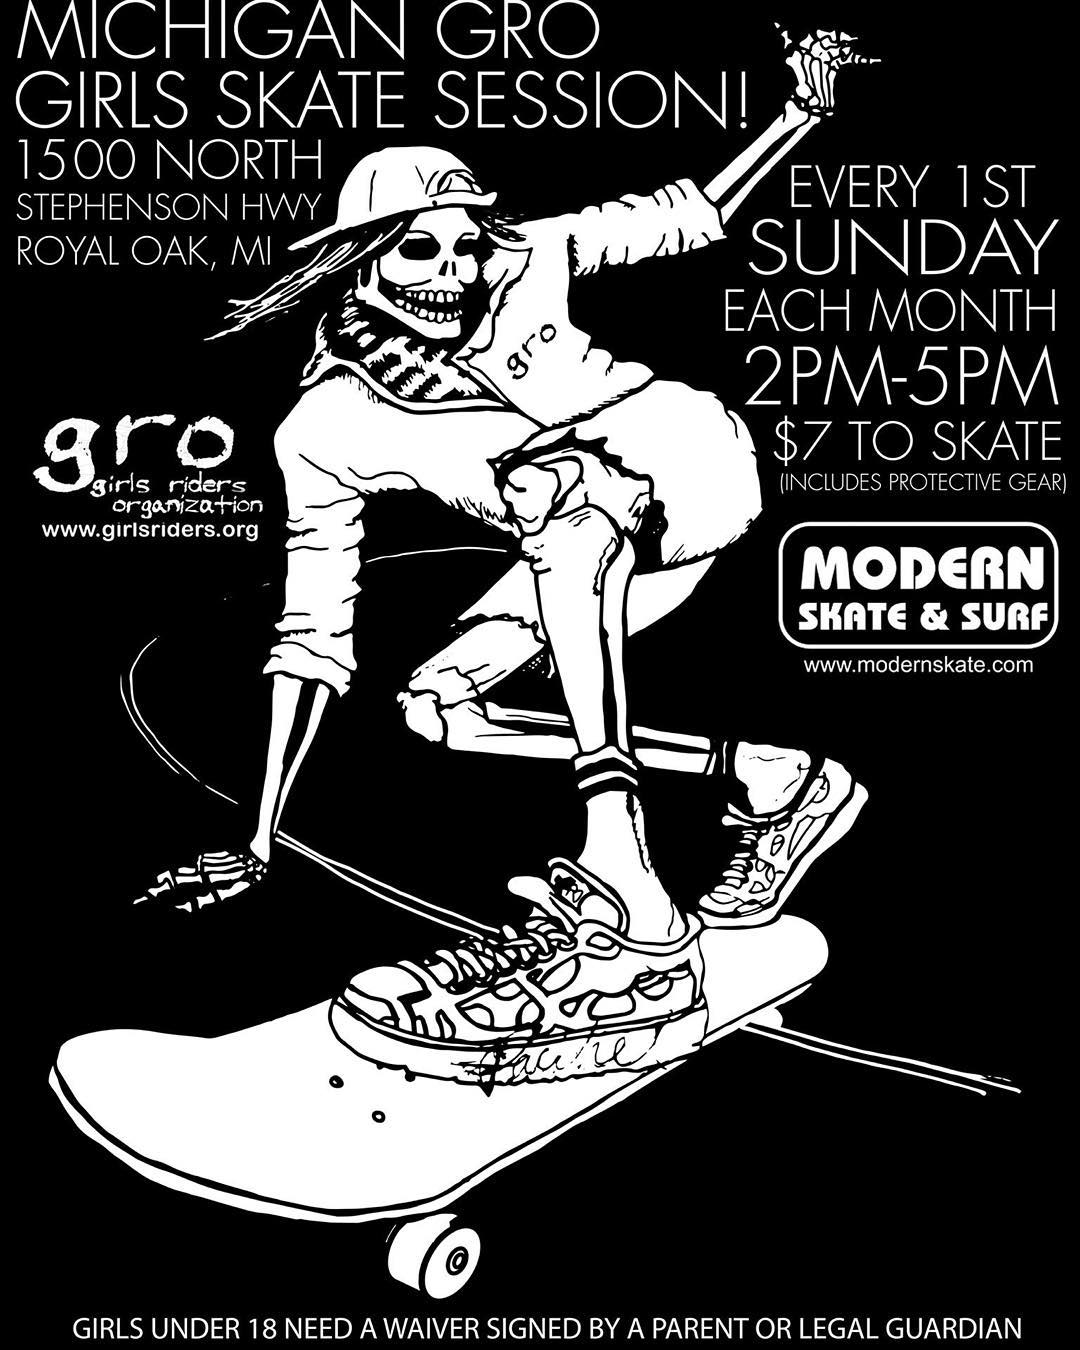 Session tomorrow with the @michigangrocrew ladies @modernskate